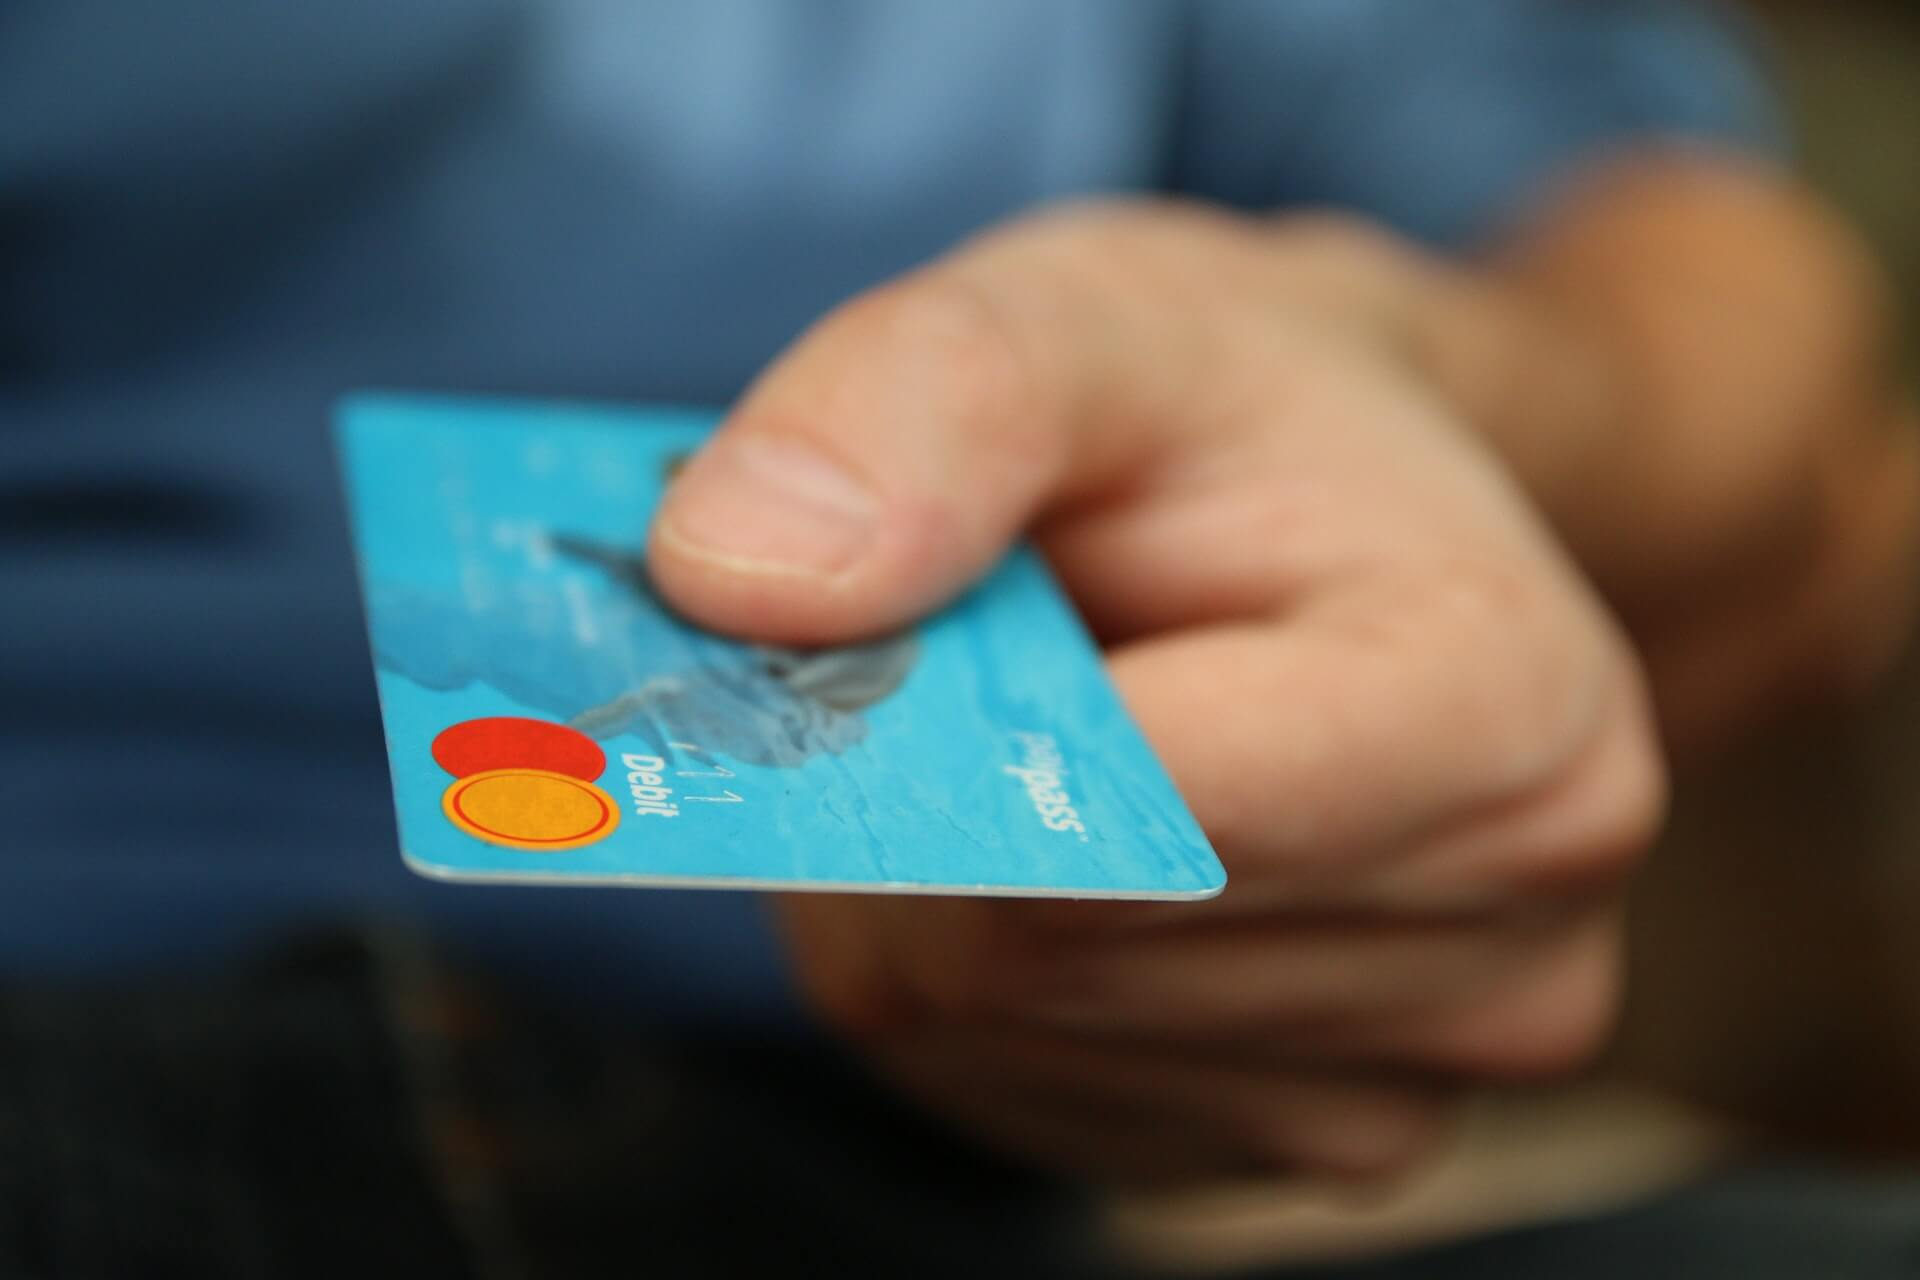 PayMystic Payment Processing